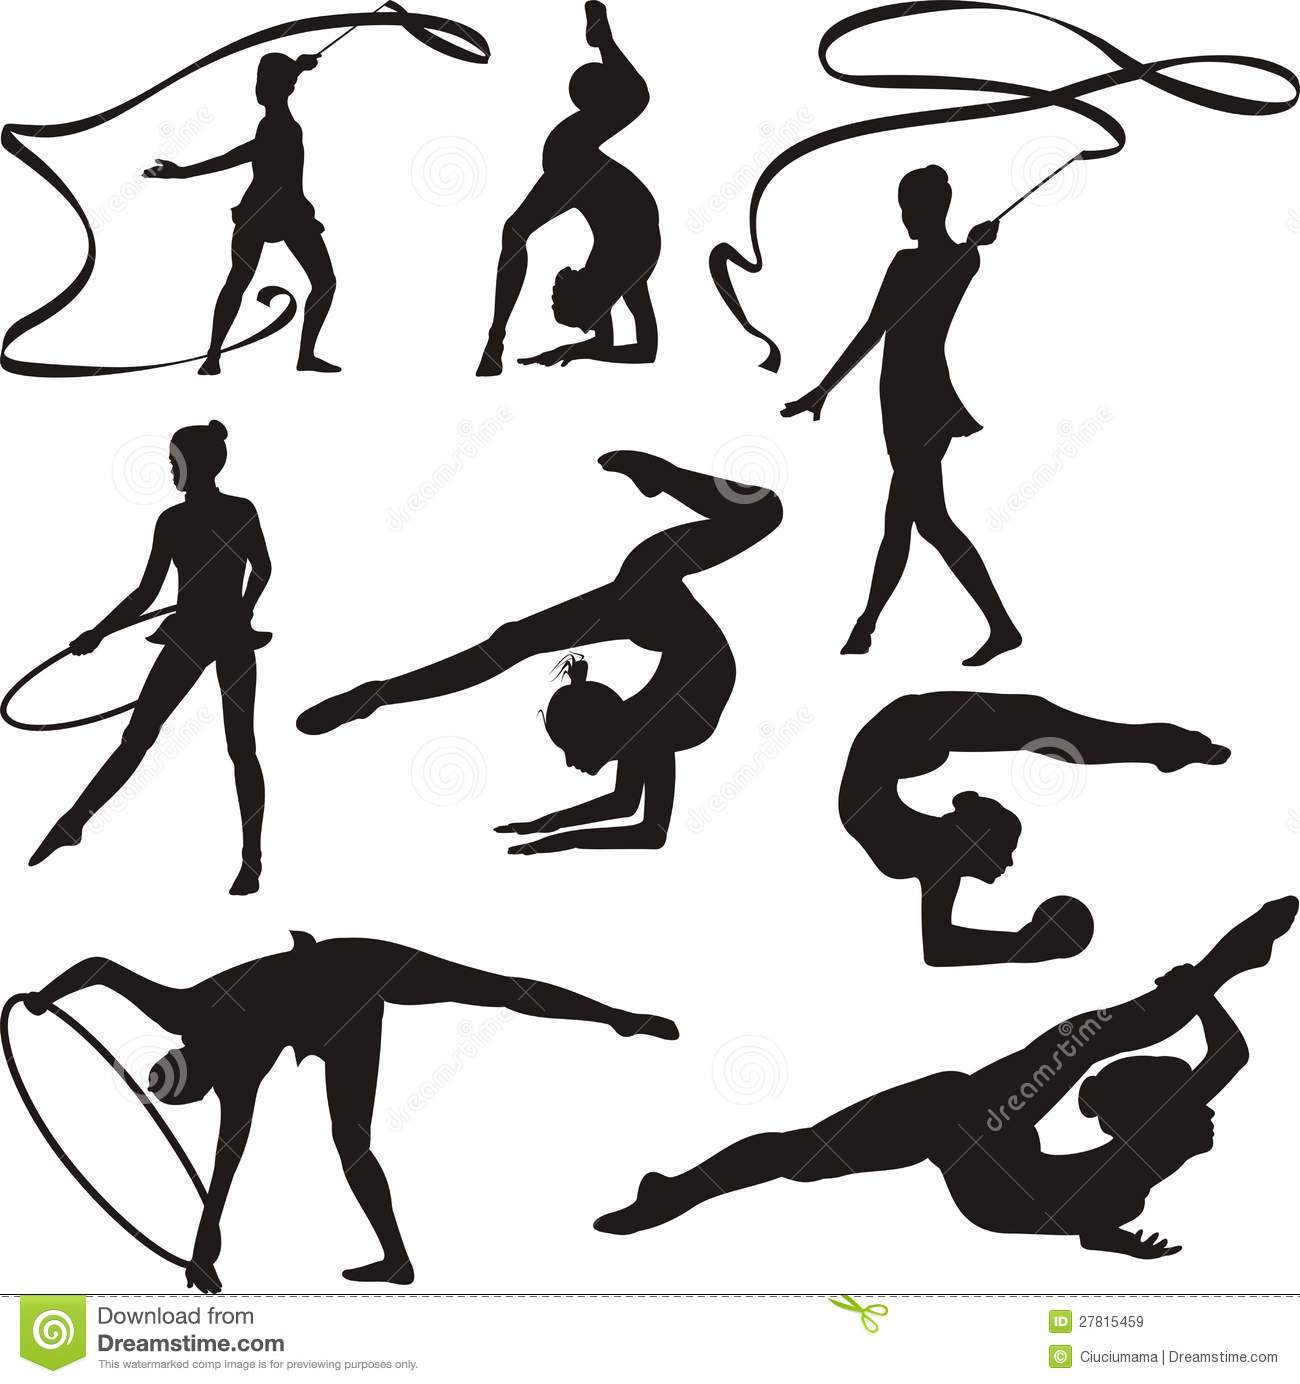 Badminton Drive moreover 1521346 BQ moreover Stock Illustration Outline Electric Guitars Seamless Pattern Music Instruments Sketch Repeated Motif Textile Page Fill Design Image50881303 in addition Ancol Steel Dog  b 731 P in addition GaGa Pit 15 Ft. on play equipment